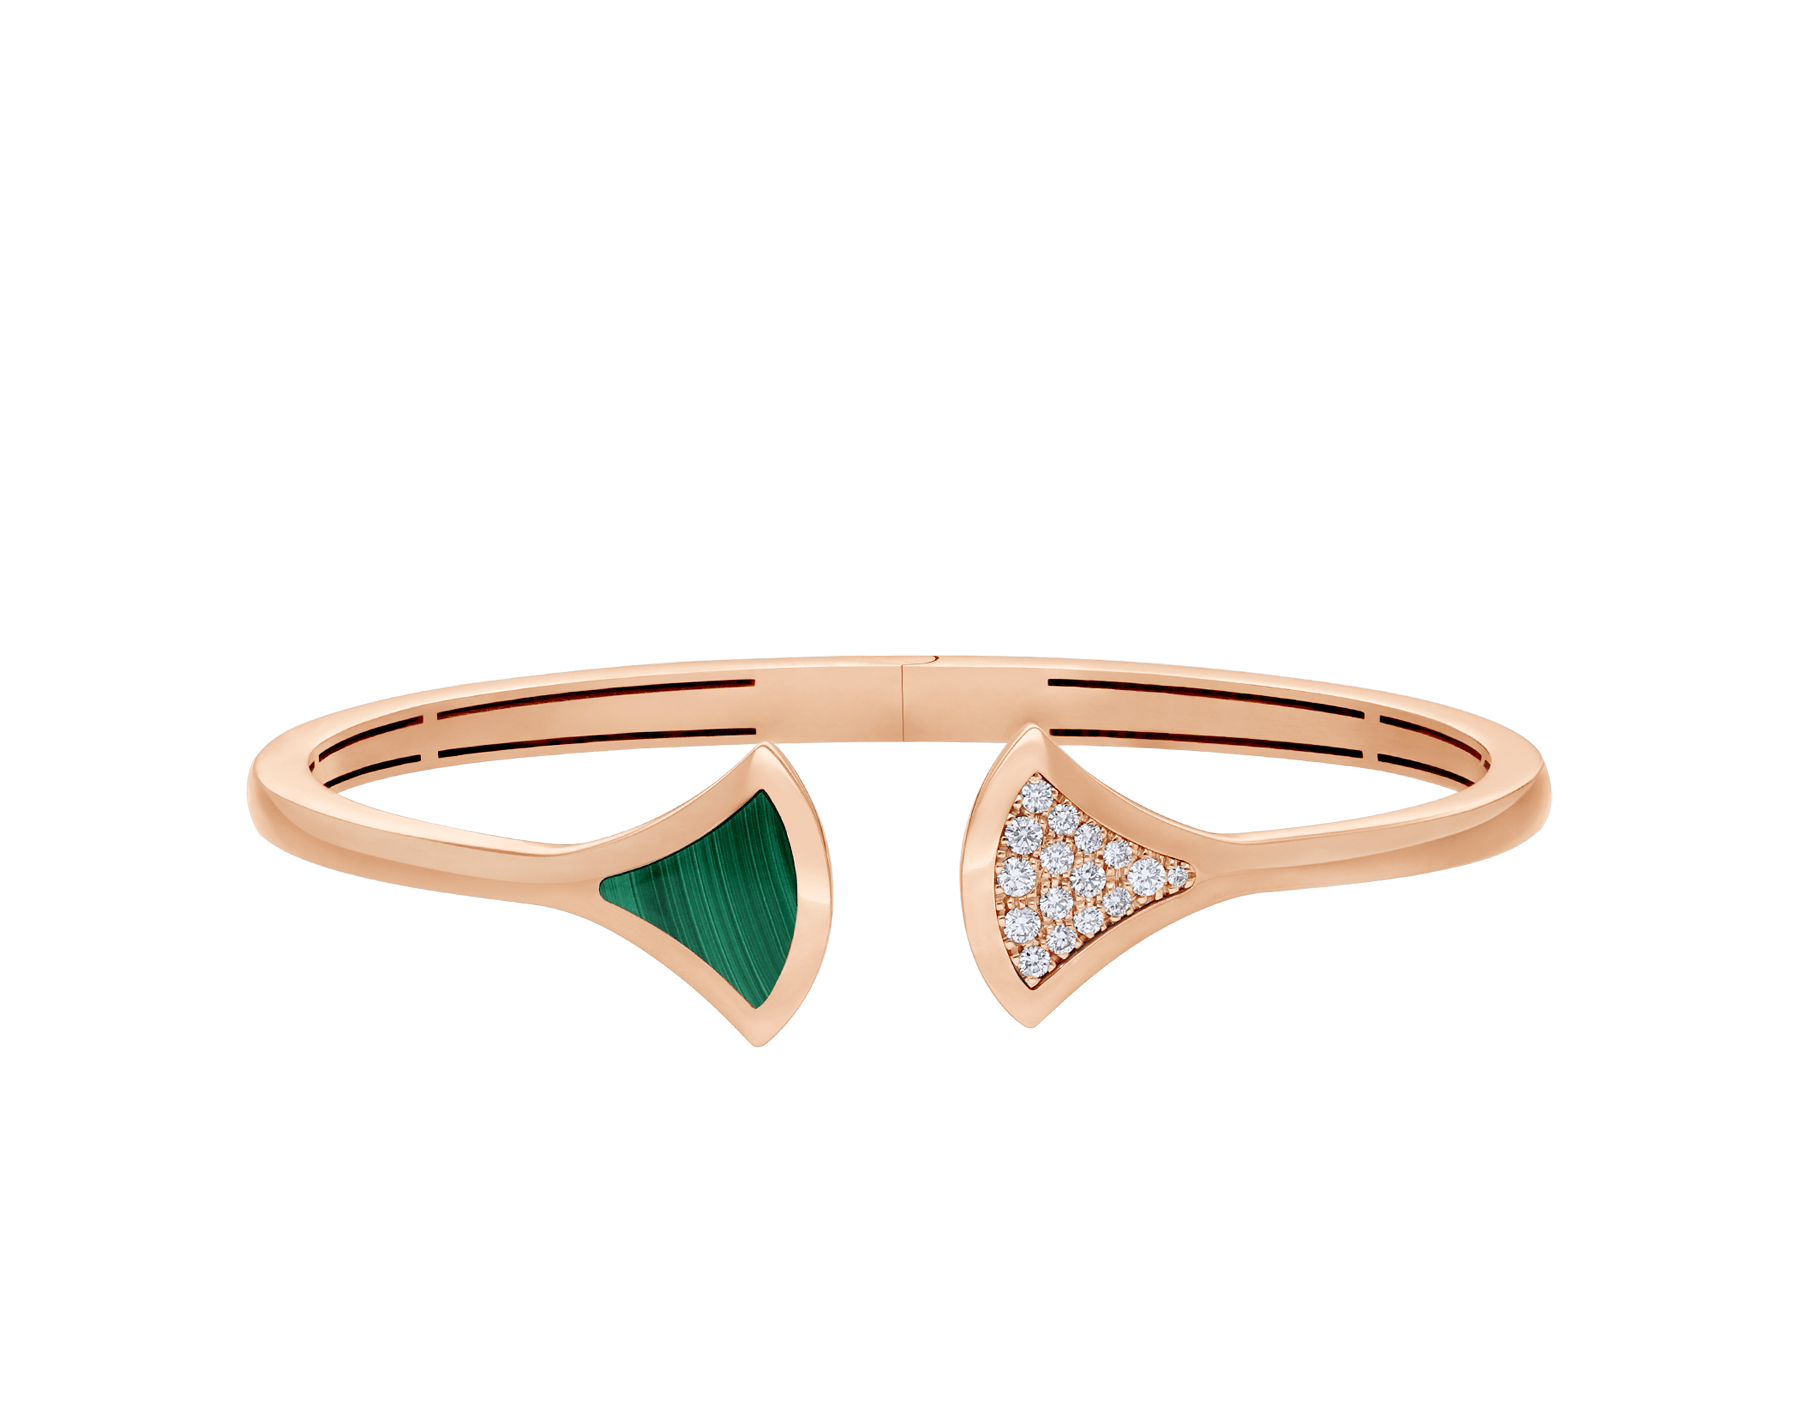 DIVAS' DREAM 18 kt rose gold bangle bracelet set with malachite element and pavé diamonds (0.16 ct) BR858679 image 2